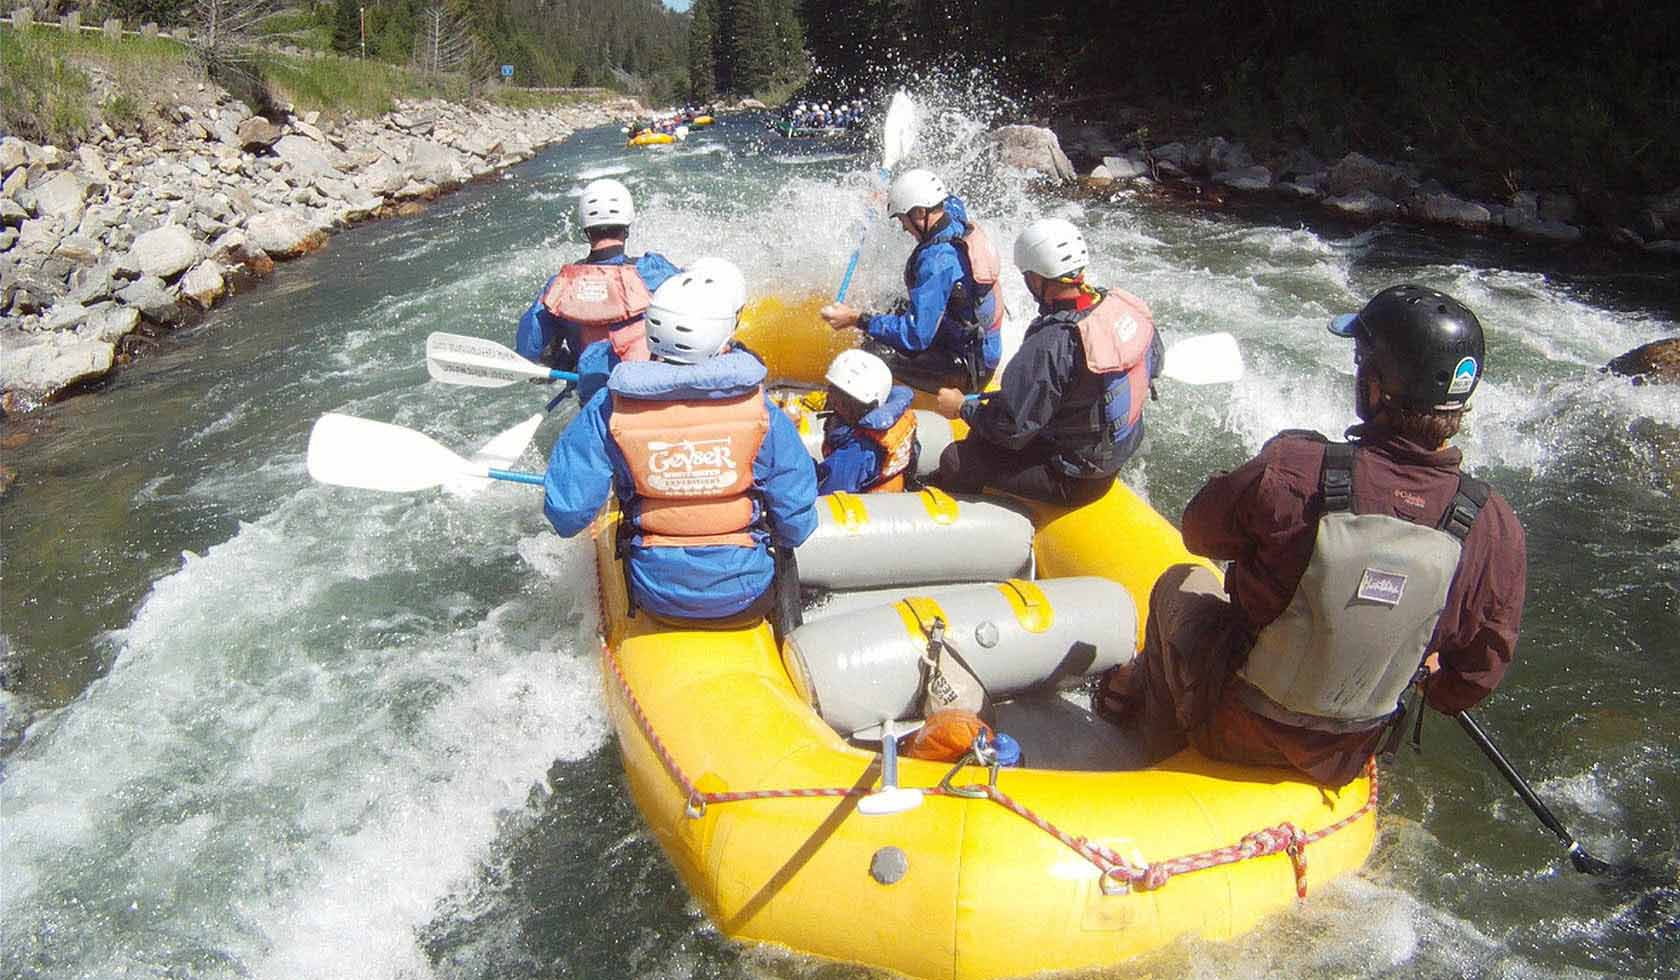 Geyser Whitewater Expeditions profile image